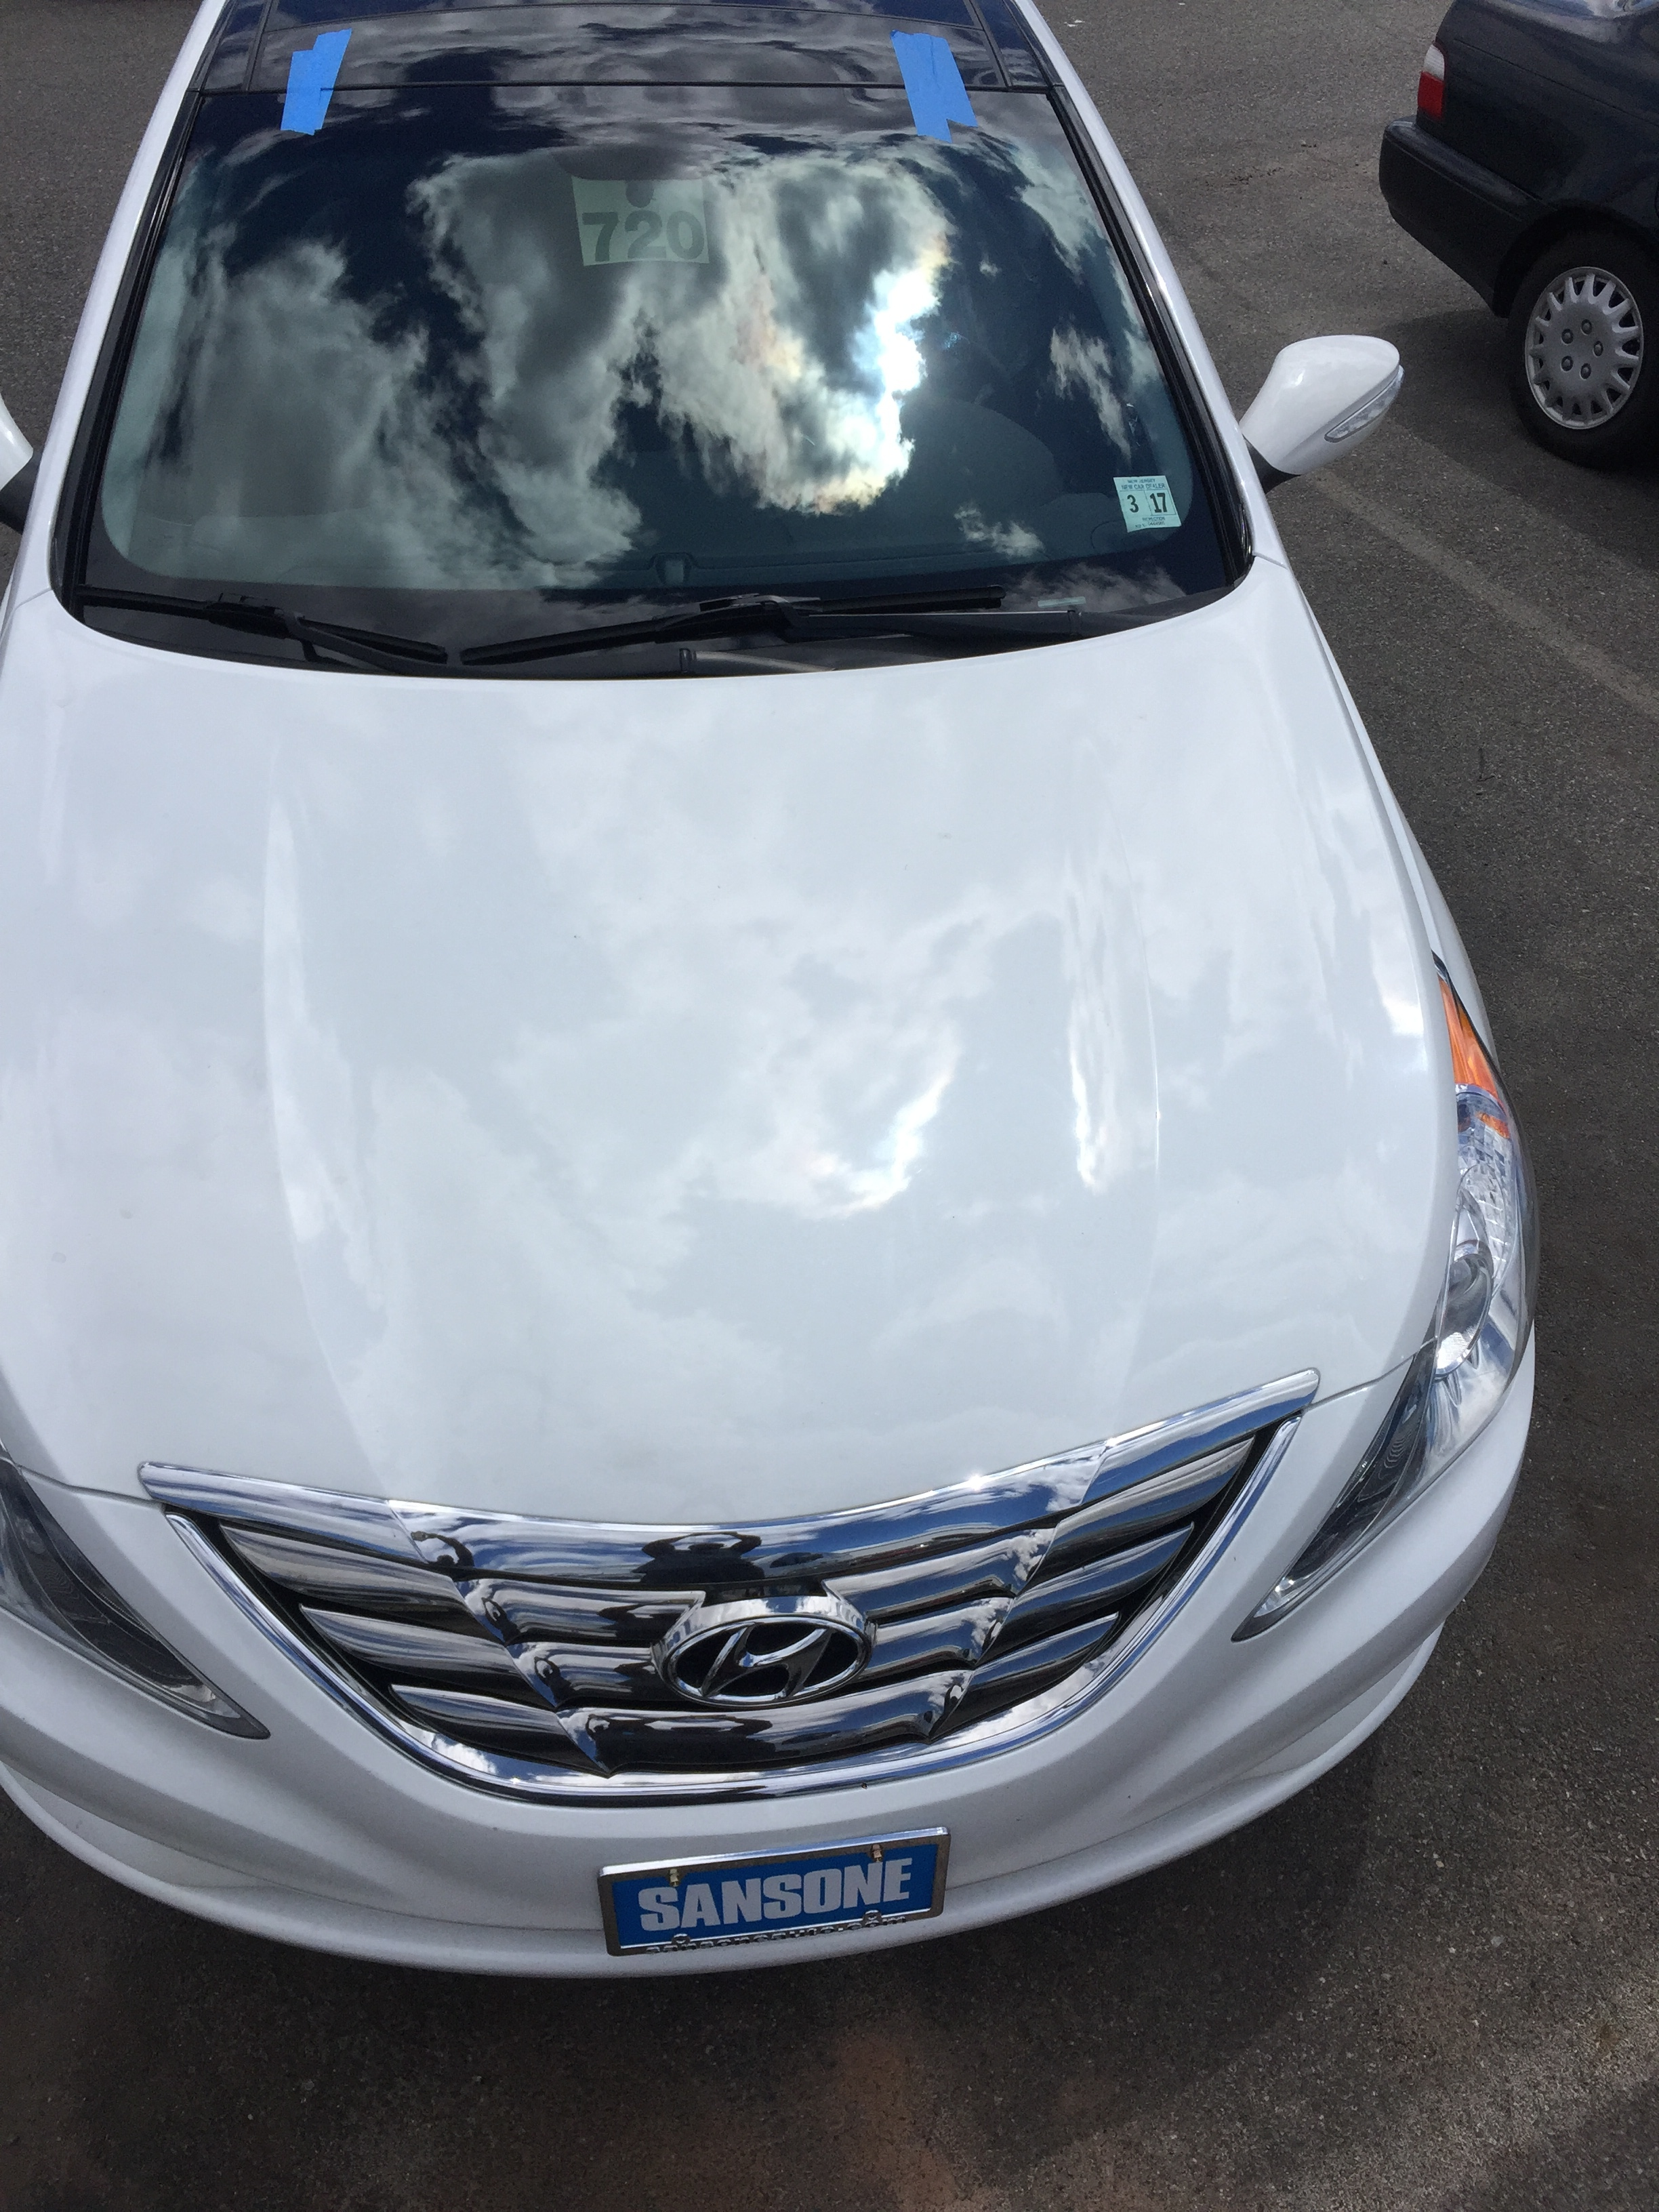 2019 Hyundai Sonata car Windshield before new windshield affordable automobile Windshield Replacement Service car windshield online quote by Platinum Auto Glass Repair New Jersey@platinumautoglassnj.com